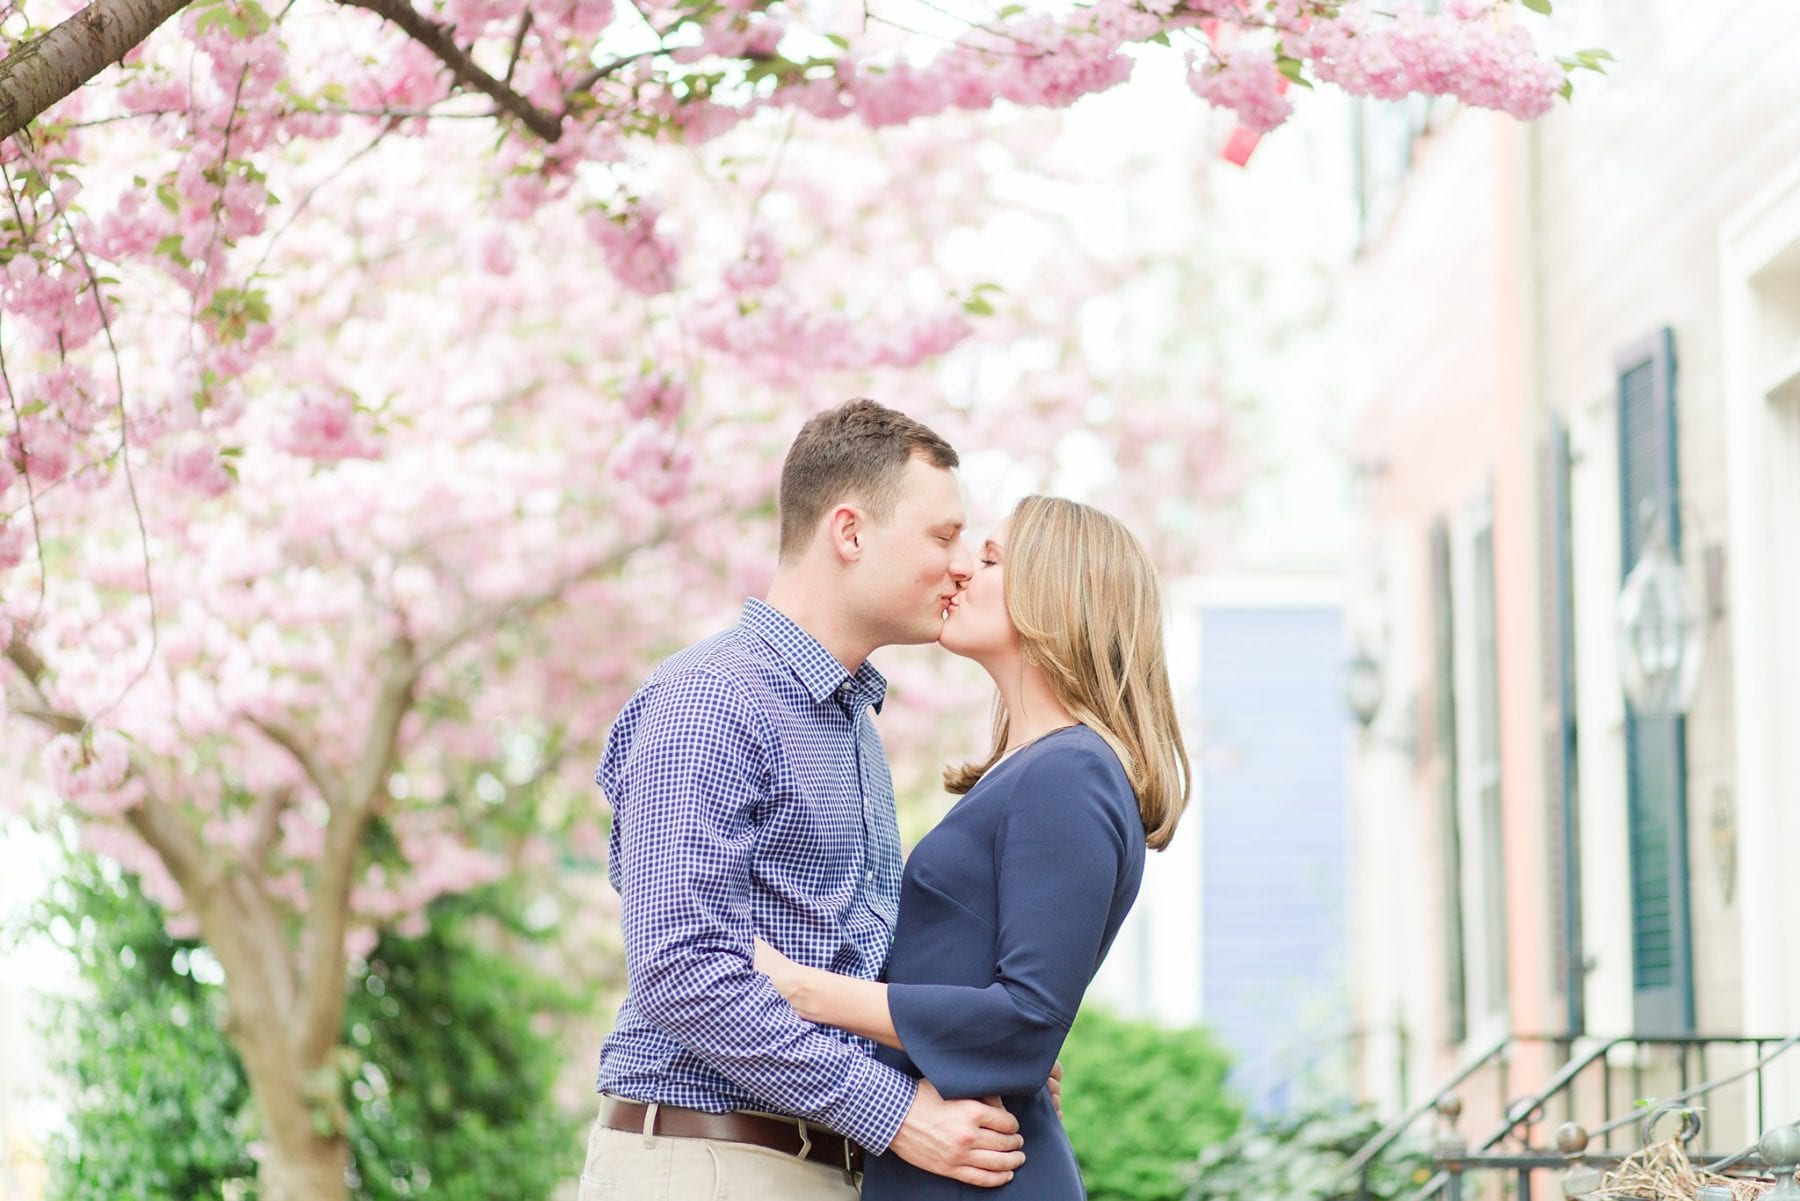 Springtime Old Town Alexandria Engagement Session Matt & Maxie Megan Kelsey Photography-64.jpg